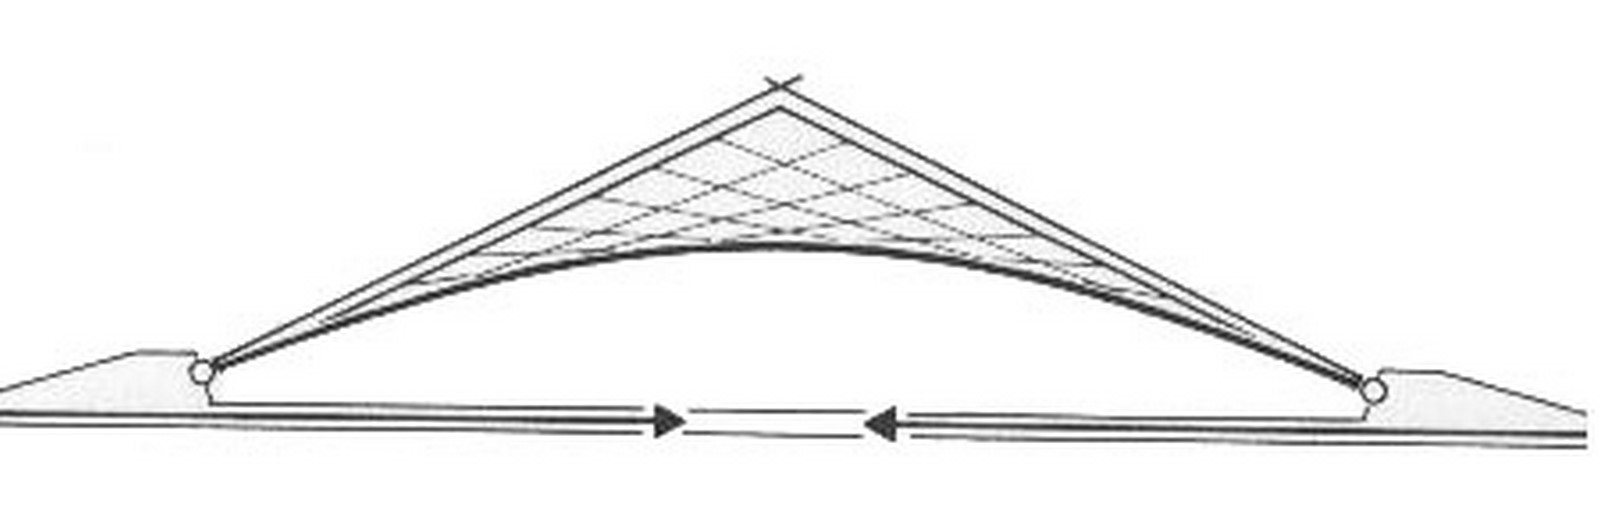 What are Hyperbolic paraboloid shells? - Sheet4